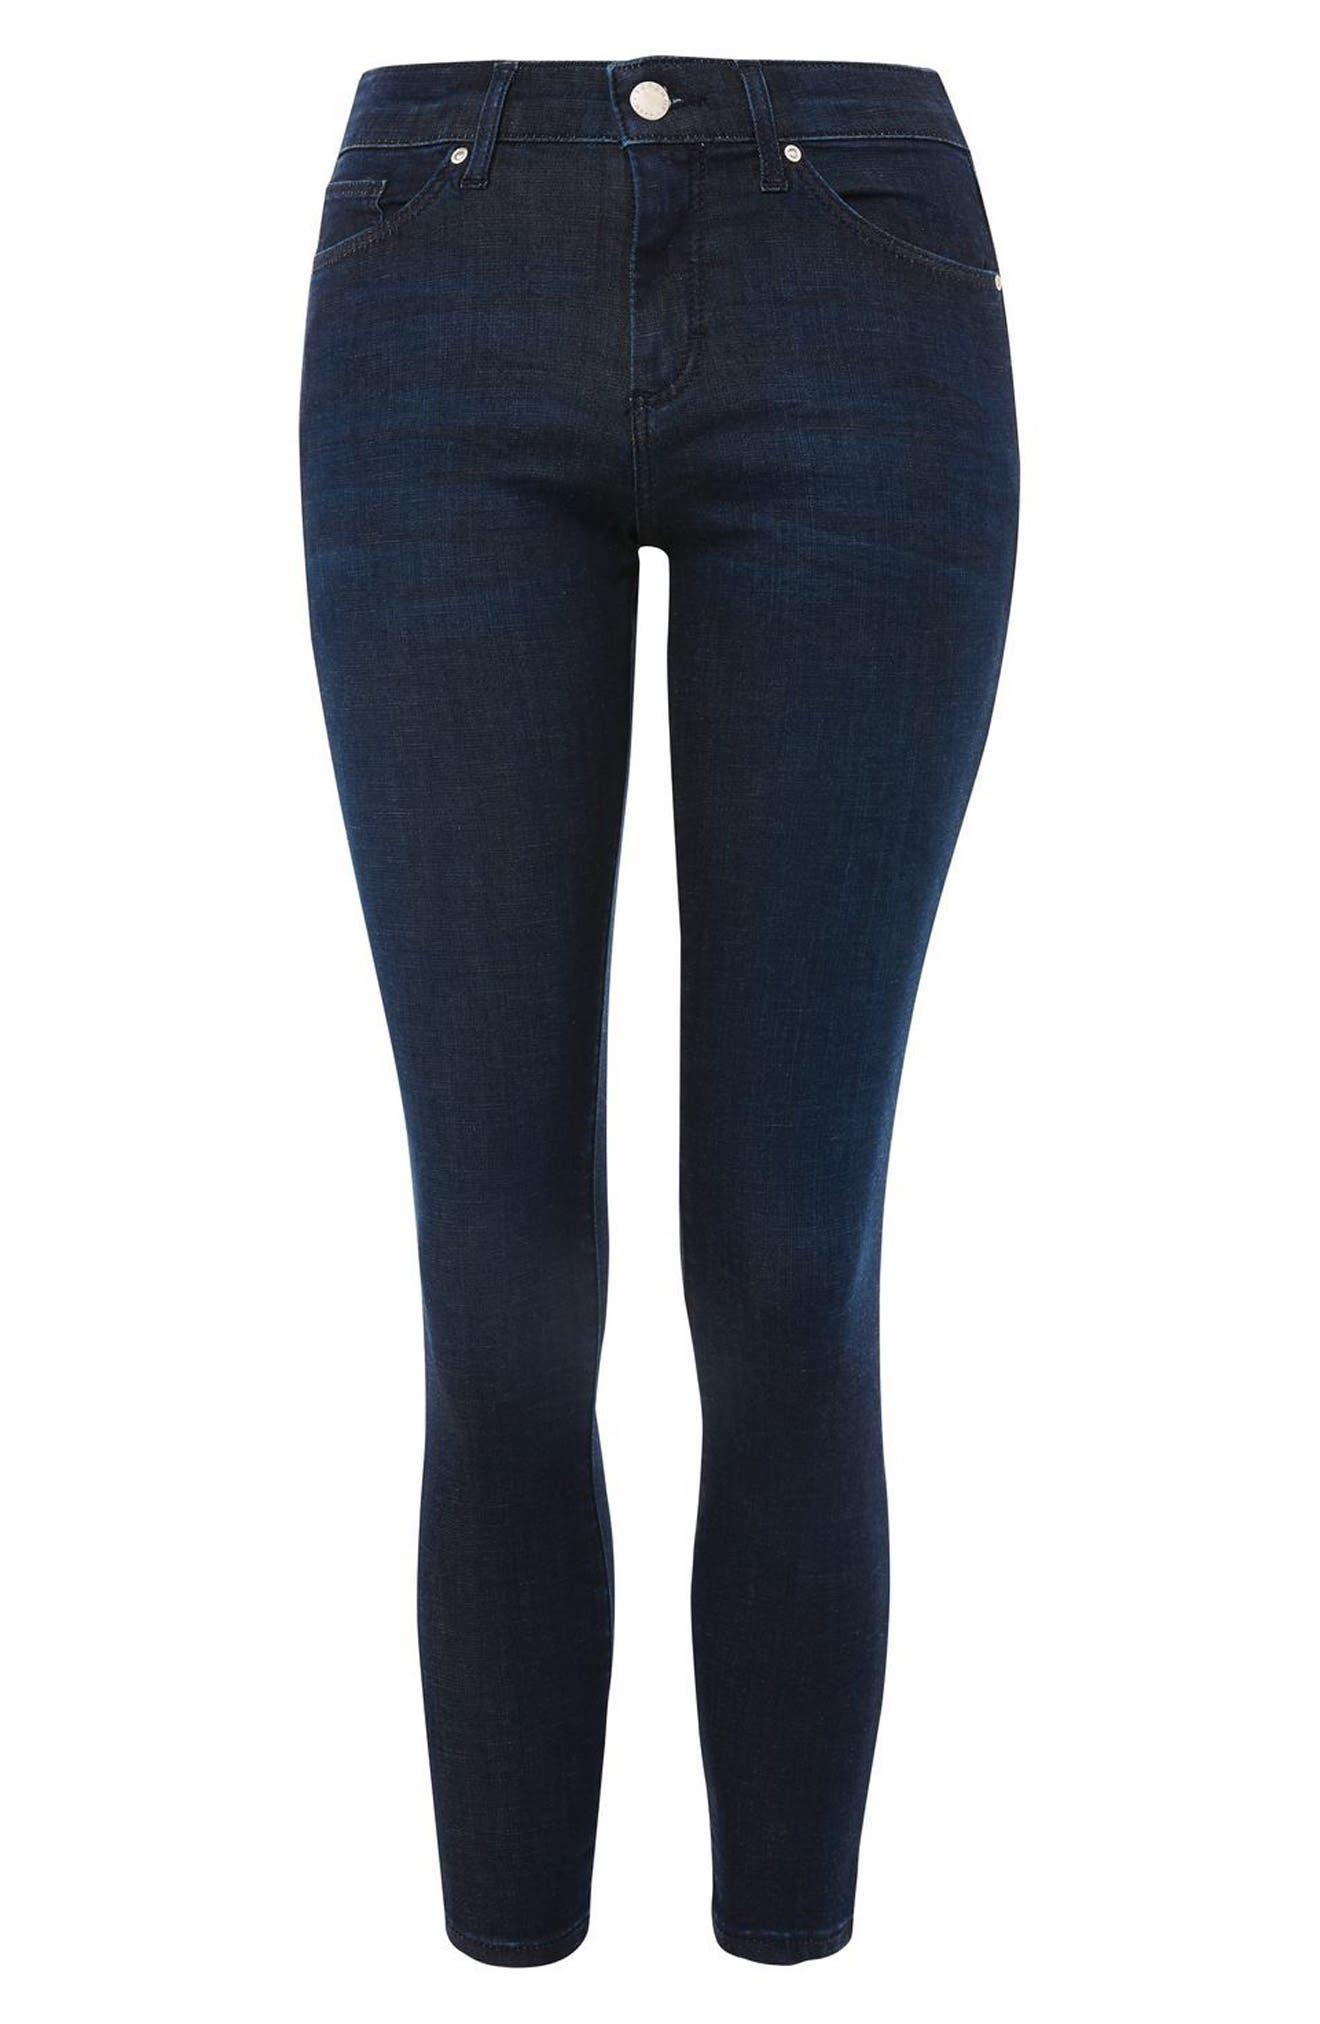 Leigh Skinny Ankle Jeans,                             Alternate thumbnail 3, color,                             401